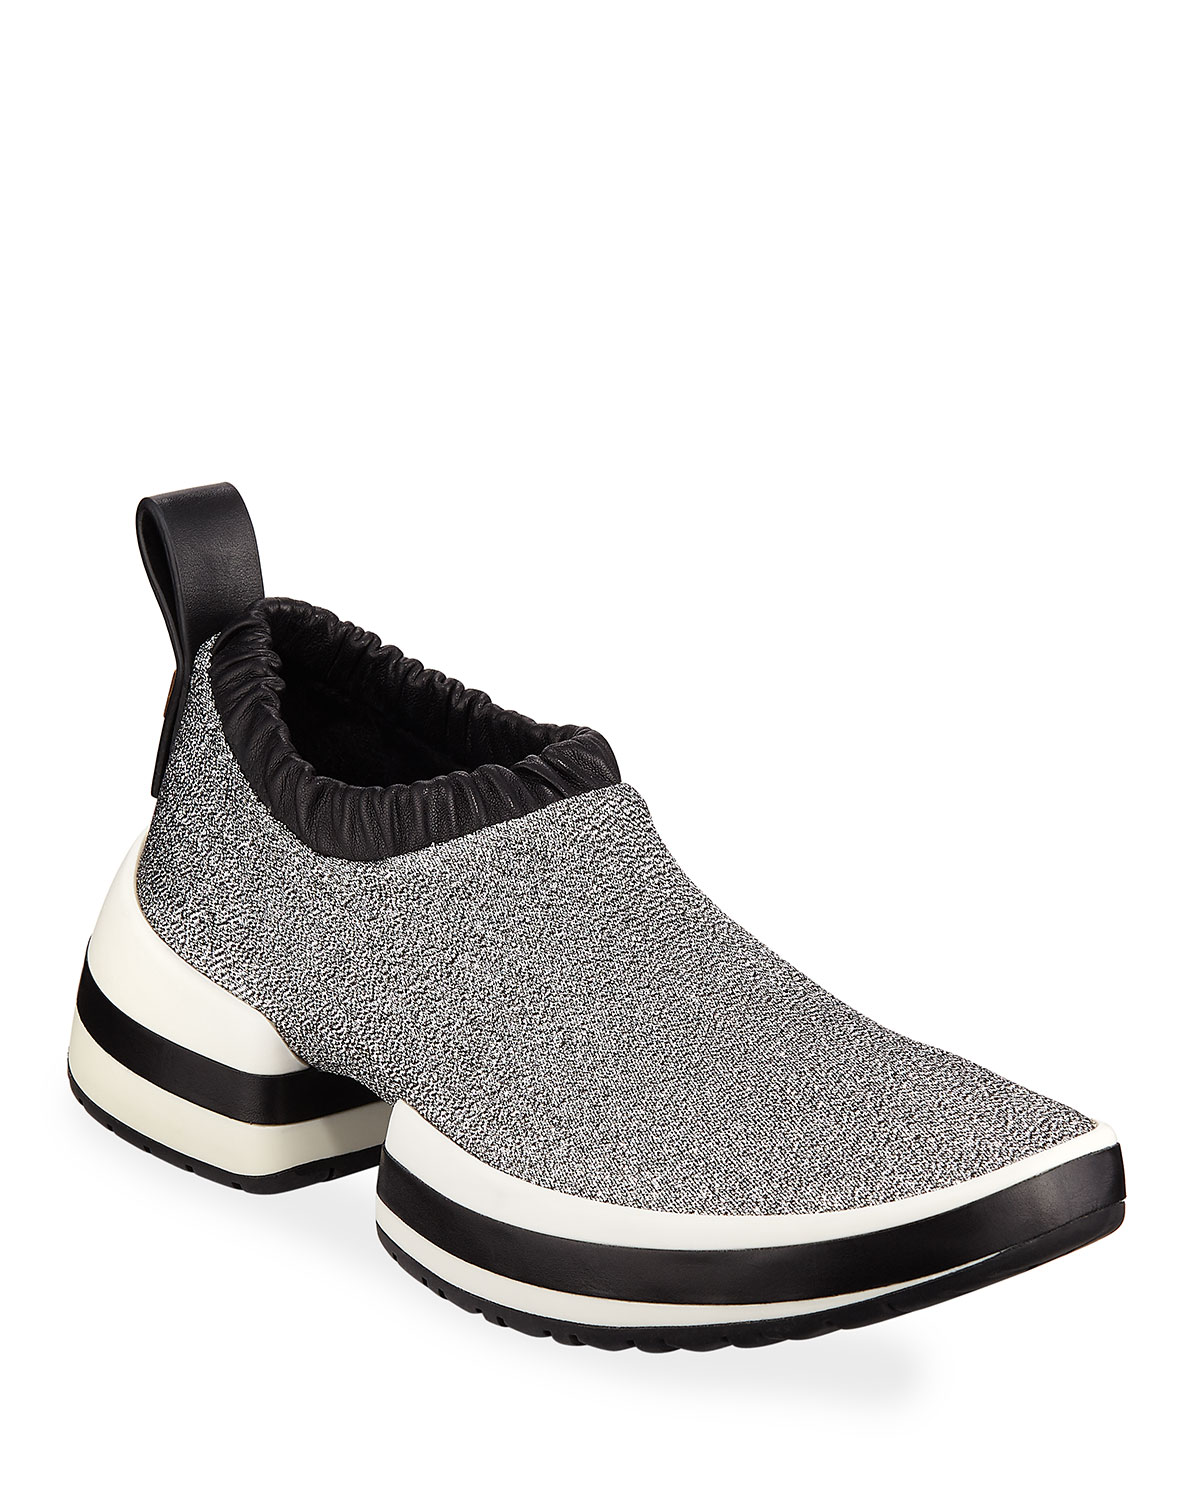 bef4664b6c Stuart Weitzman SW612 Metallic Fabric Platform Slip-On Sneakers ...